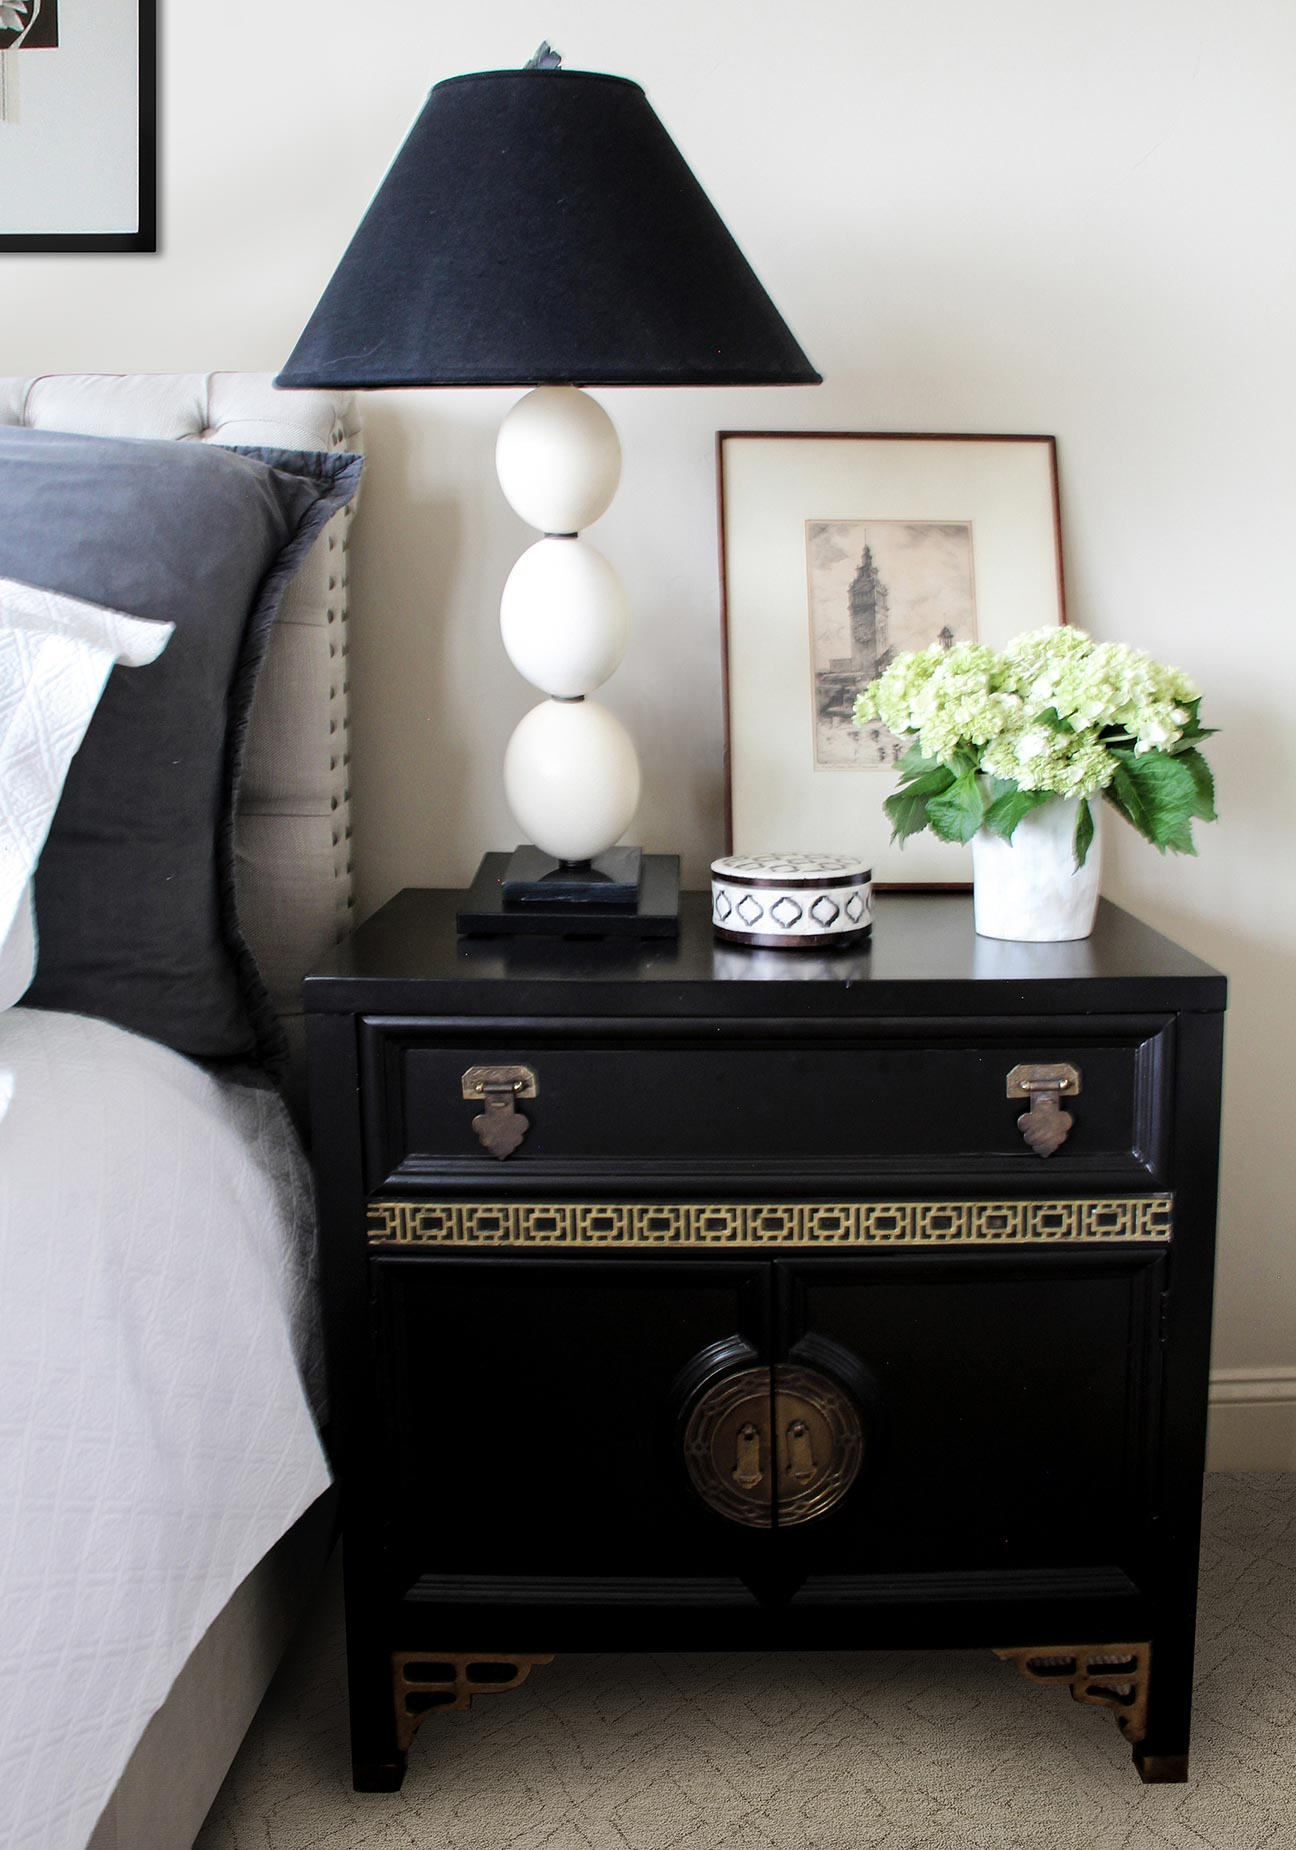 CS Bdrm Nightstand Closeup.jpg